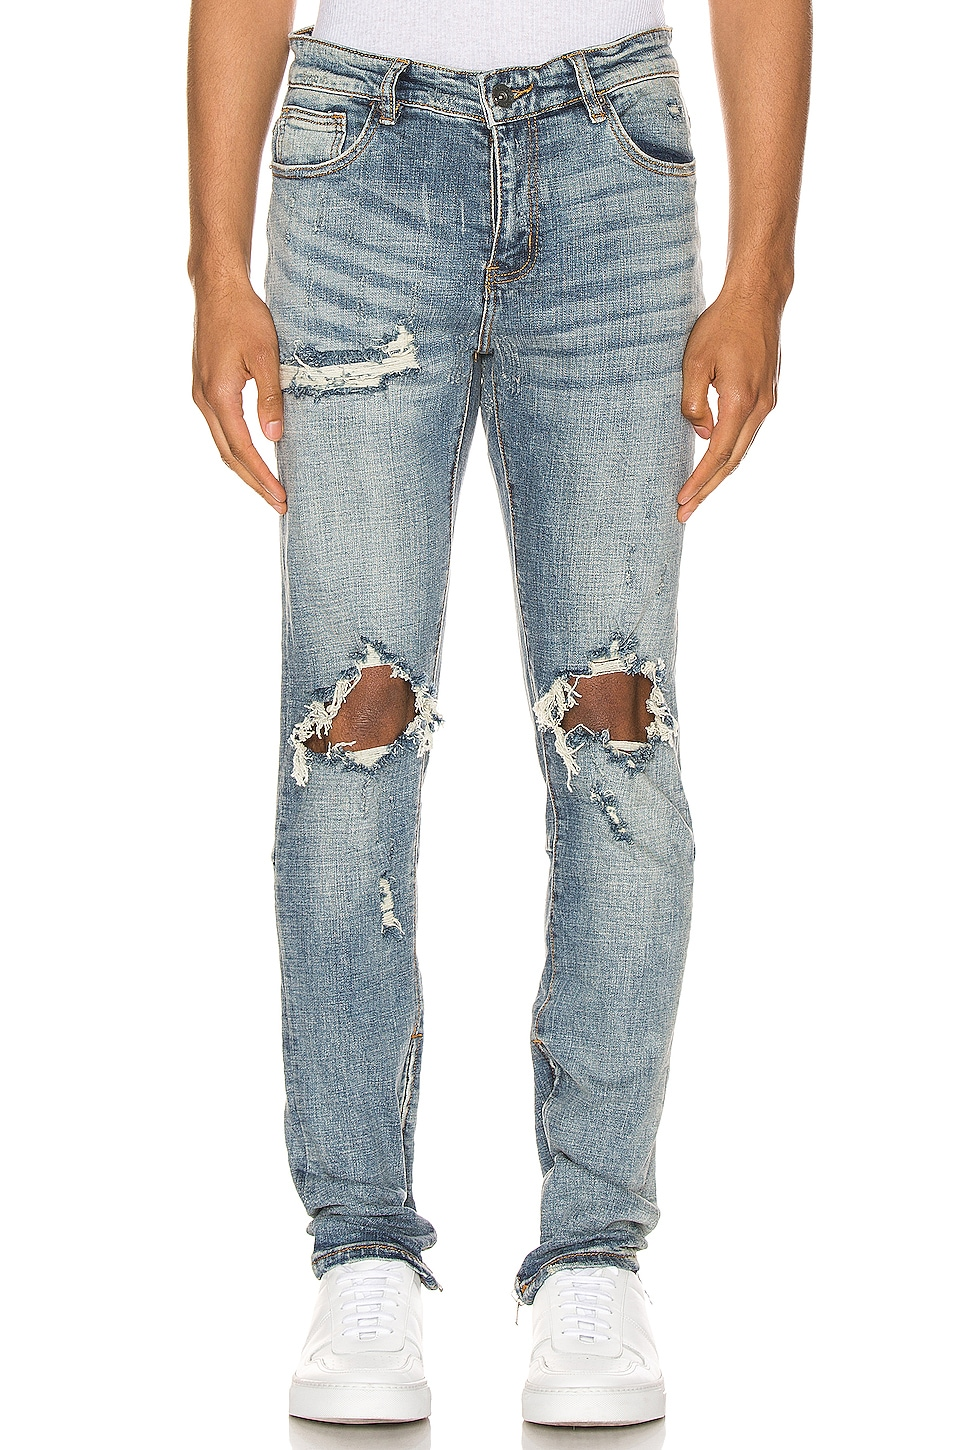 Crysp Denim Pacific Denim Jean in Blue Ripped